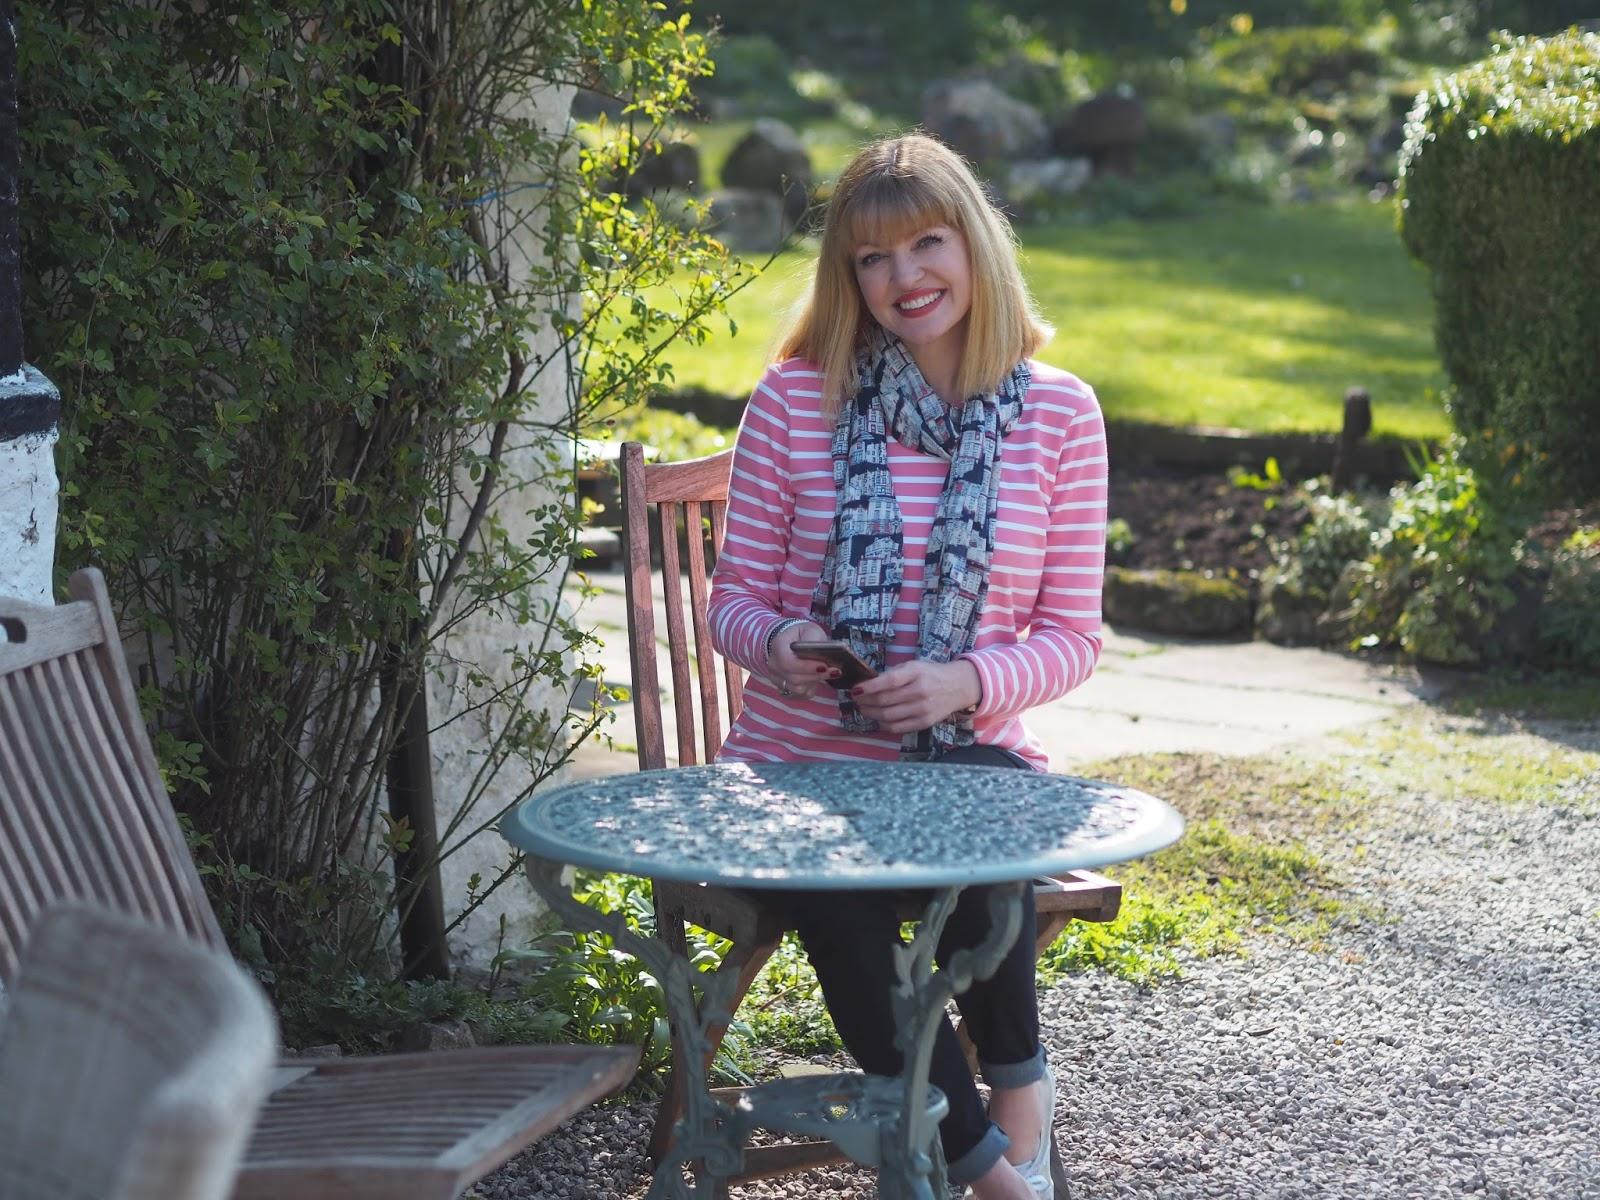 pink and white striped breton top by Tulchan with skinny jeans and silver Superga pumps, outdoors